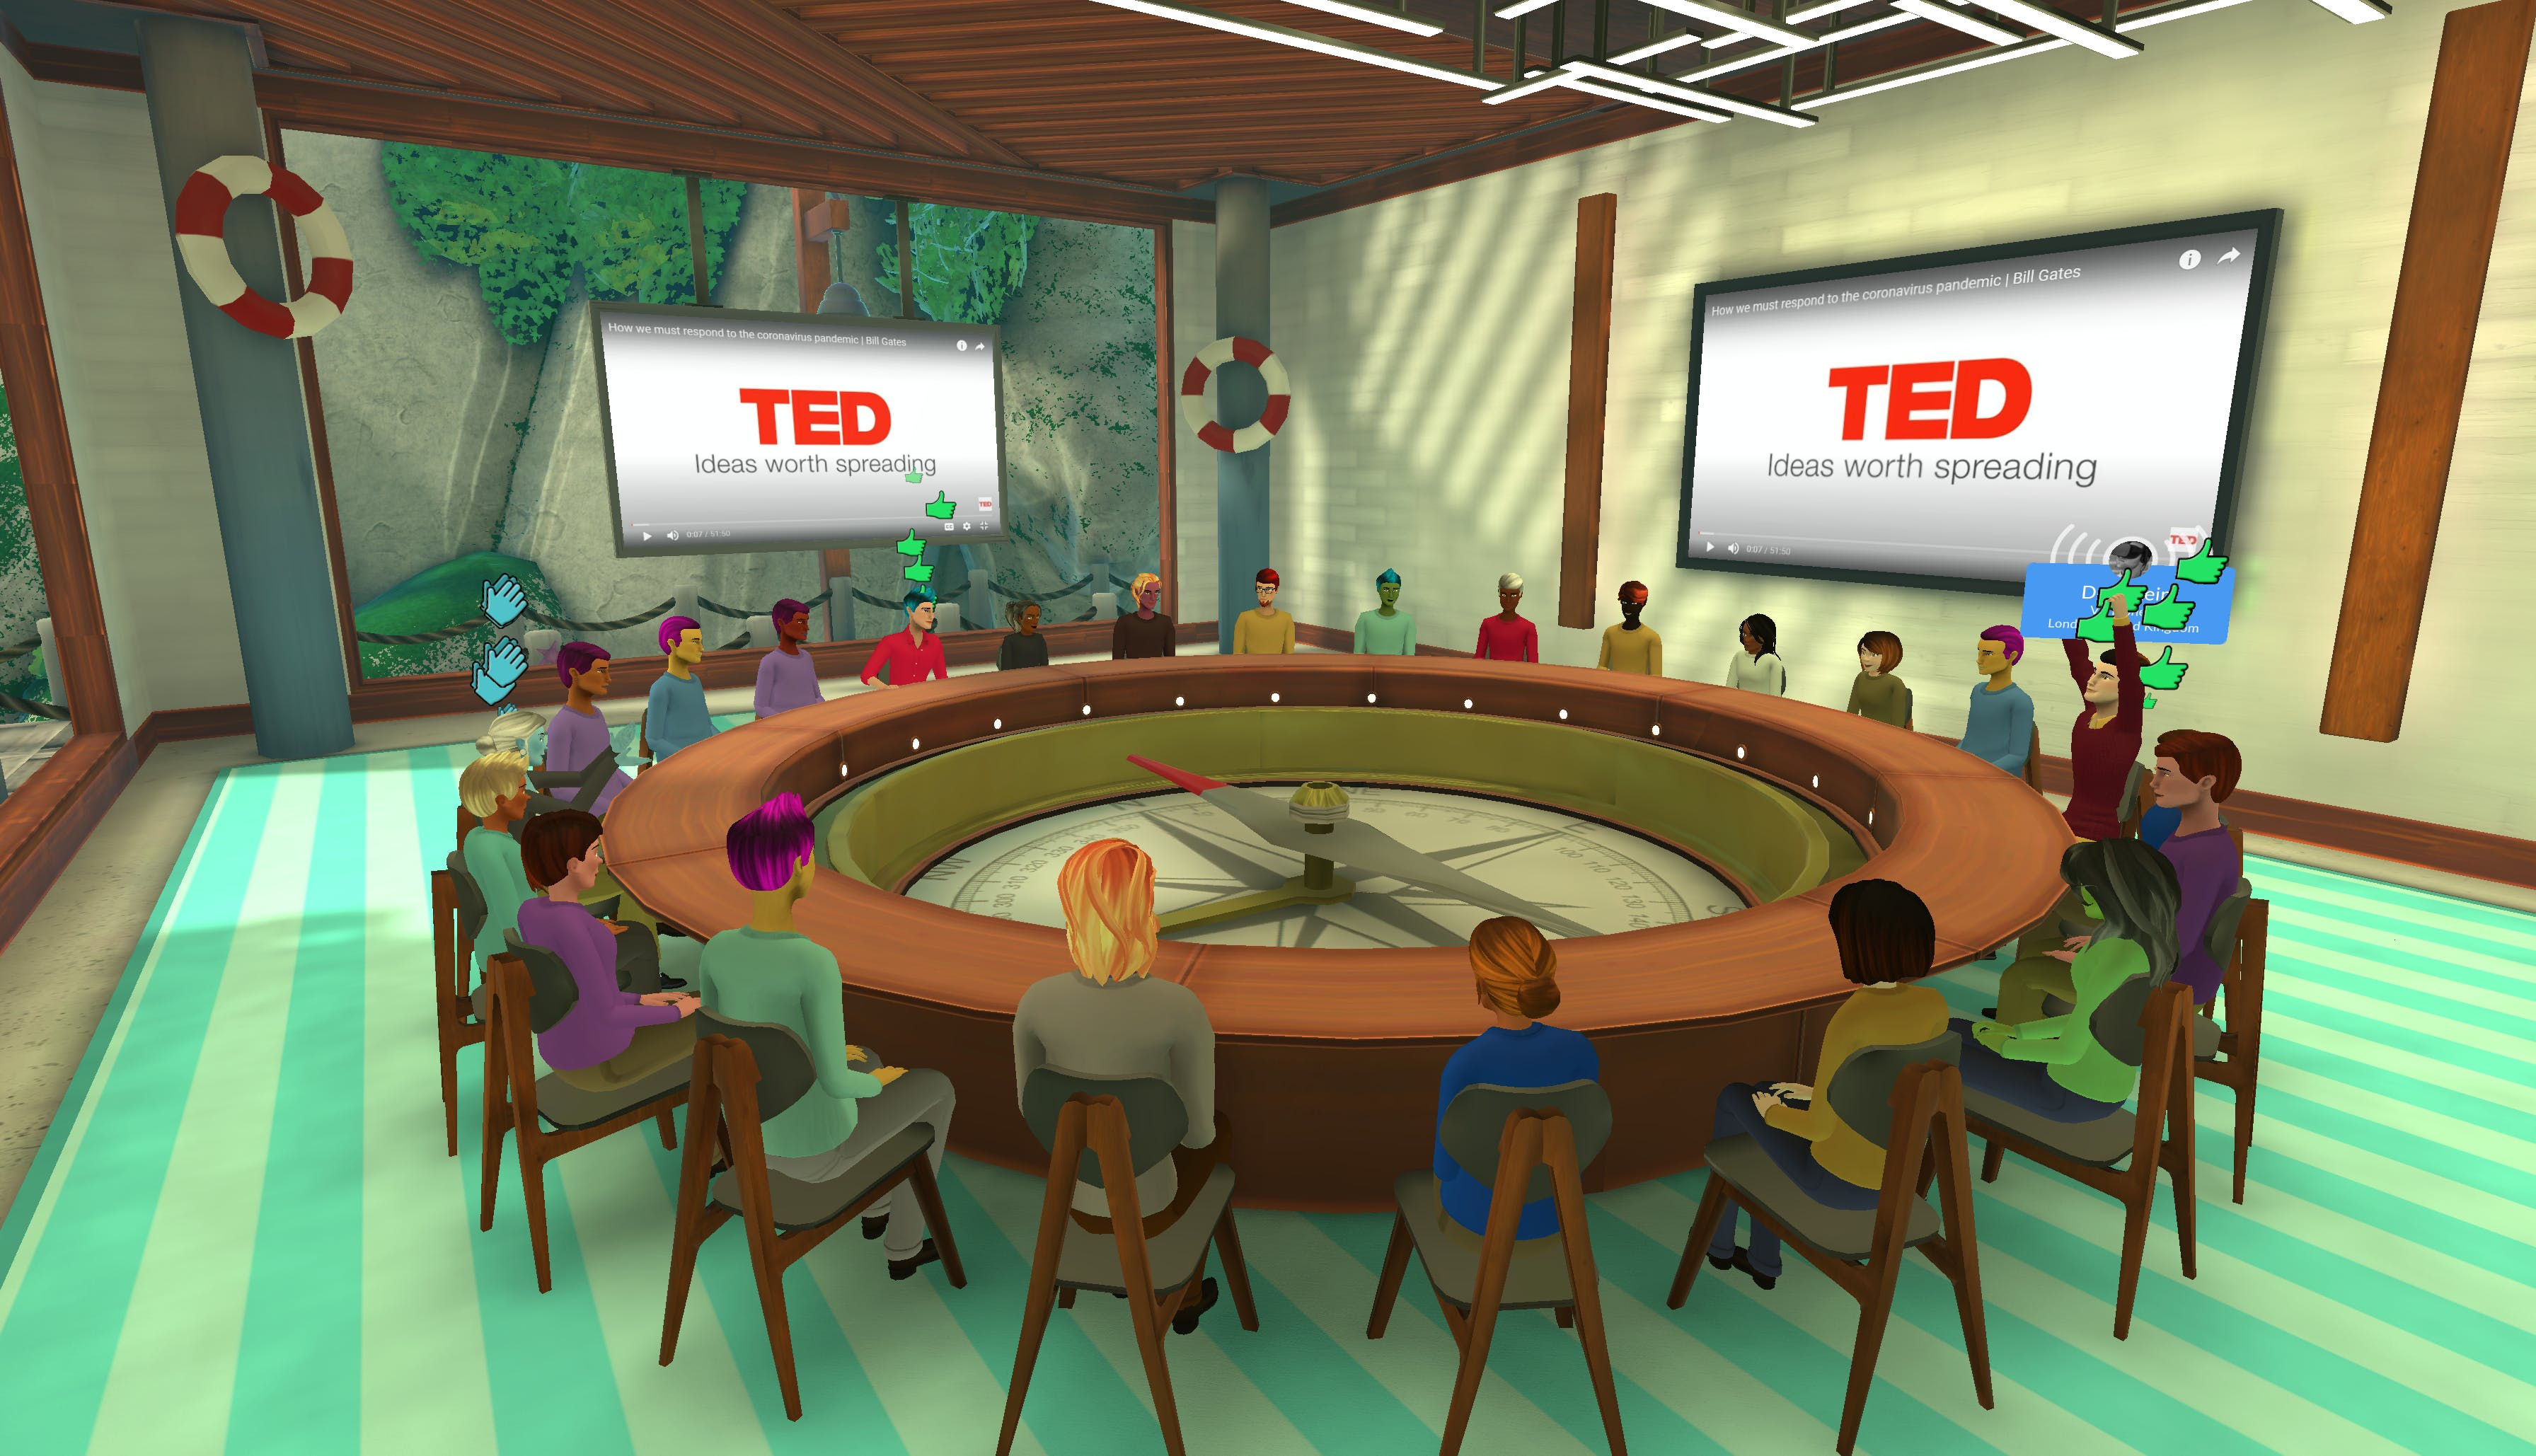 remote community meetings in Teooh's avatar-based virtual reality platform